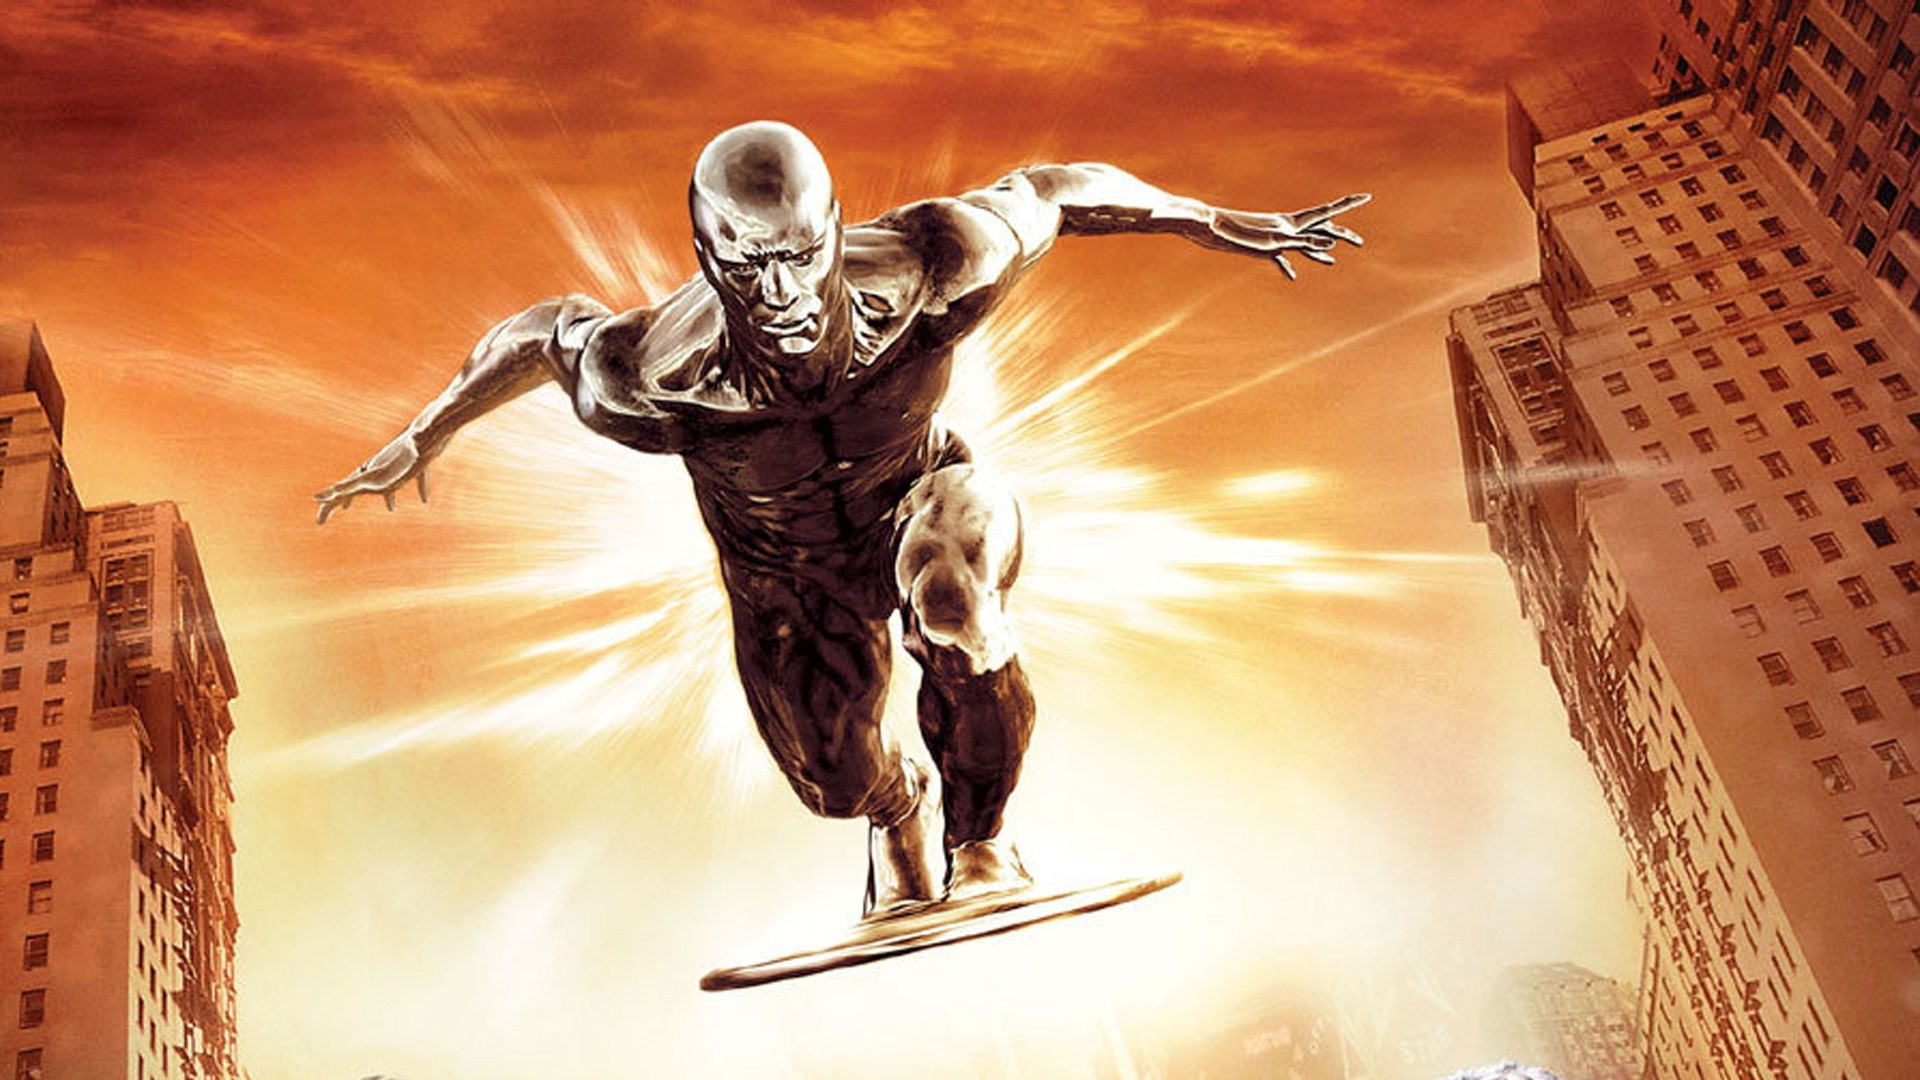 1920x1080  free screensaver wallpapers for fantastic 4 rise of the silver  surfer